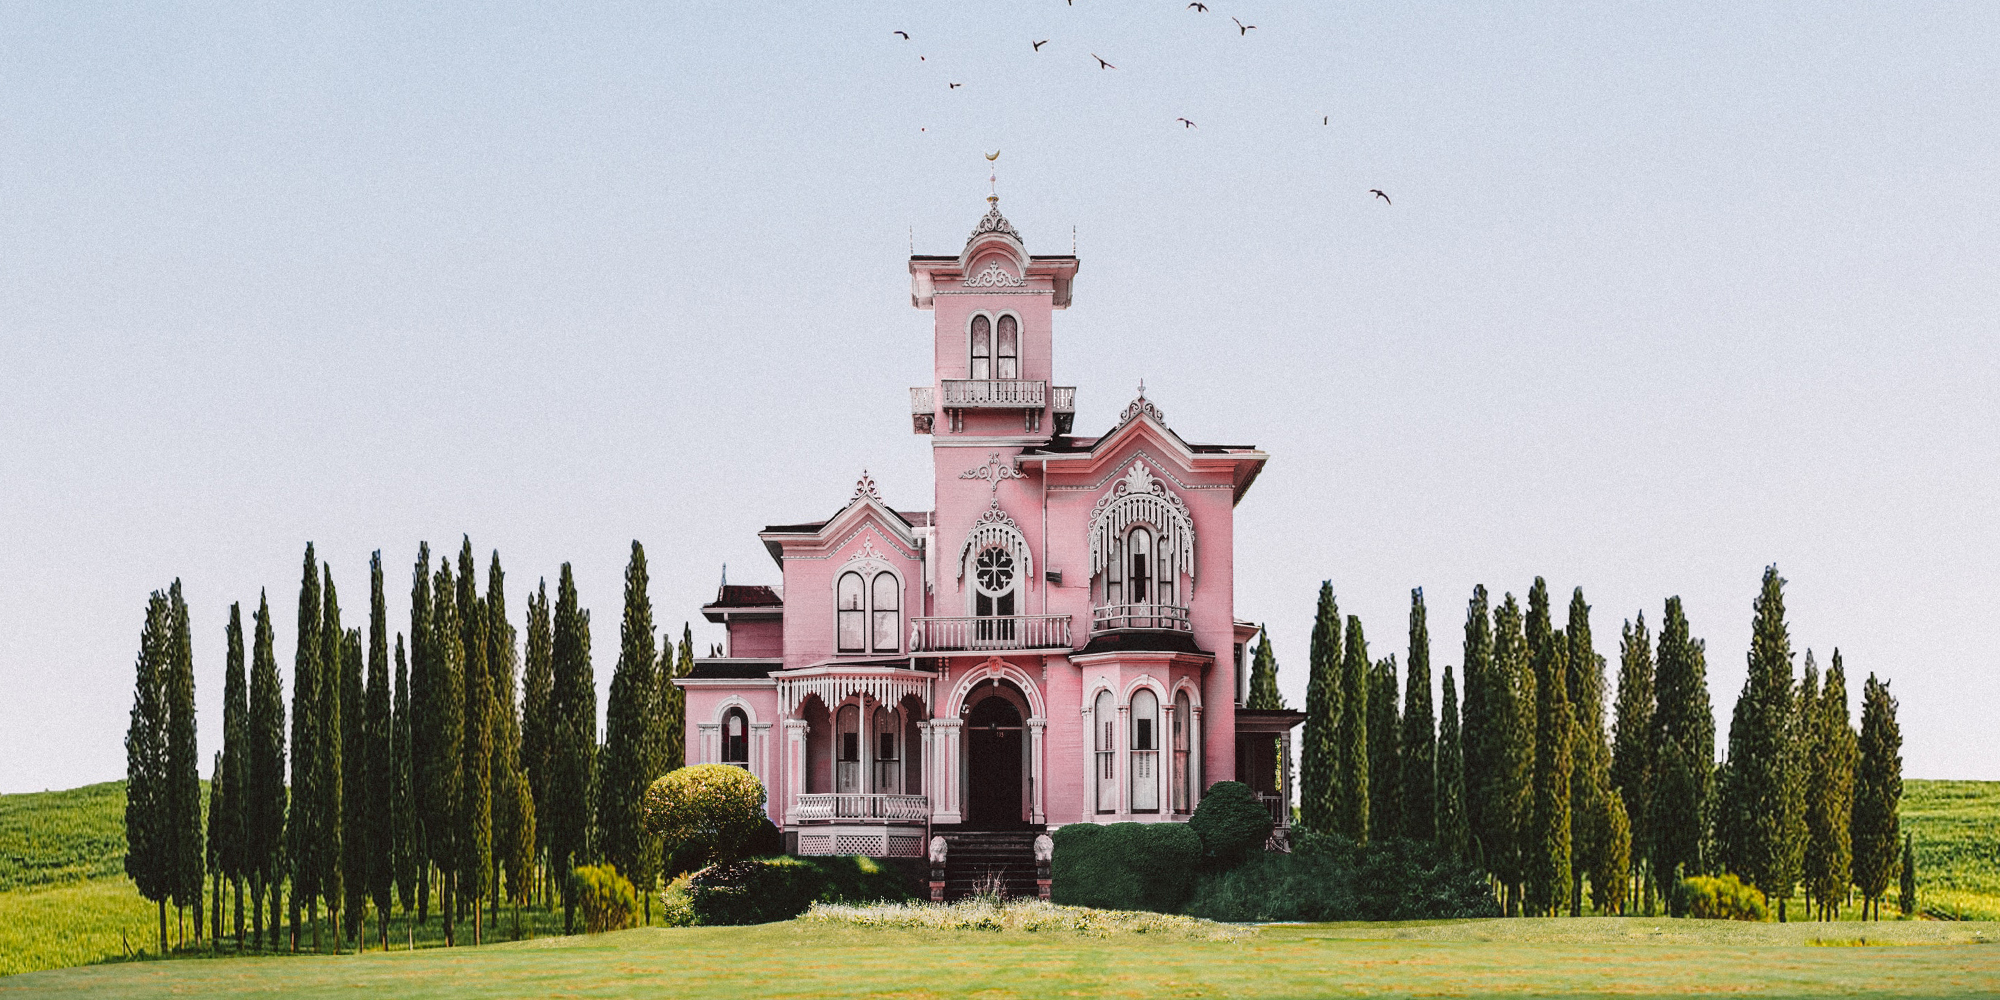 A pink house surrounded by trees